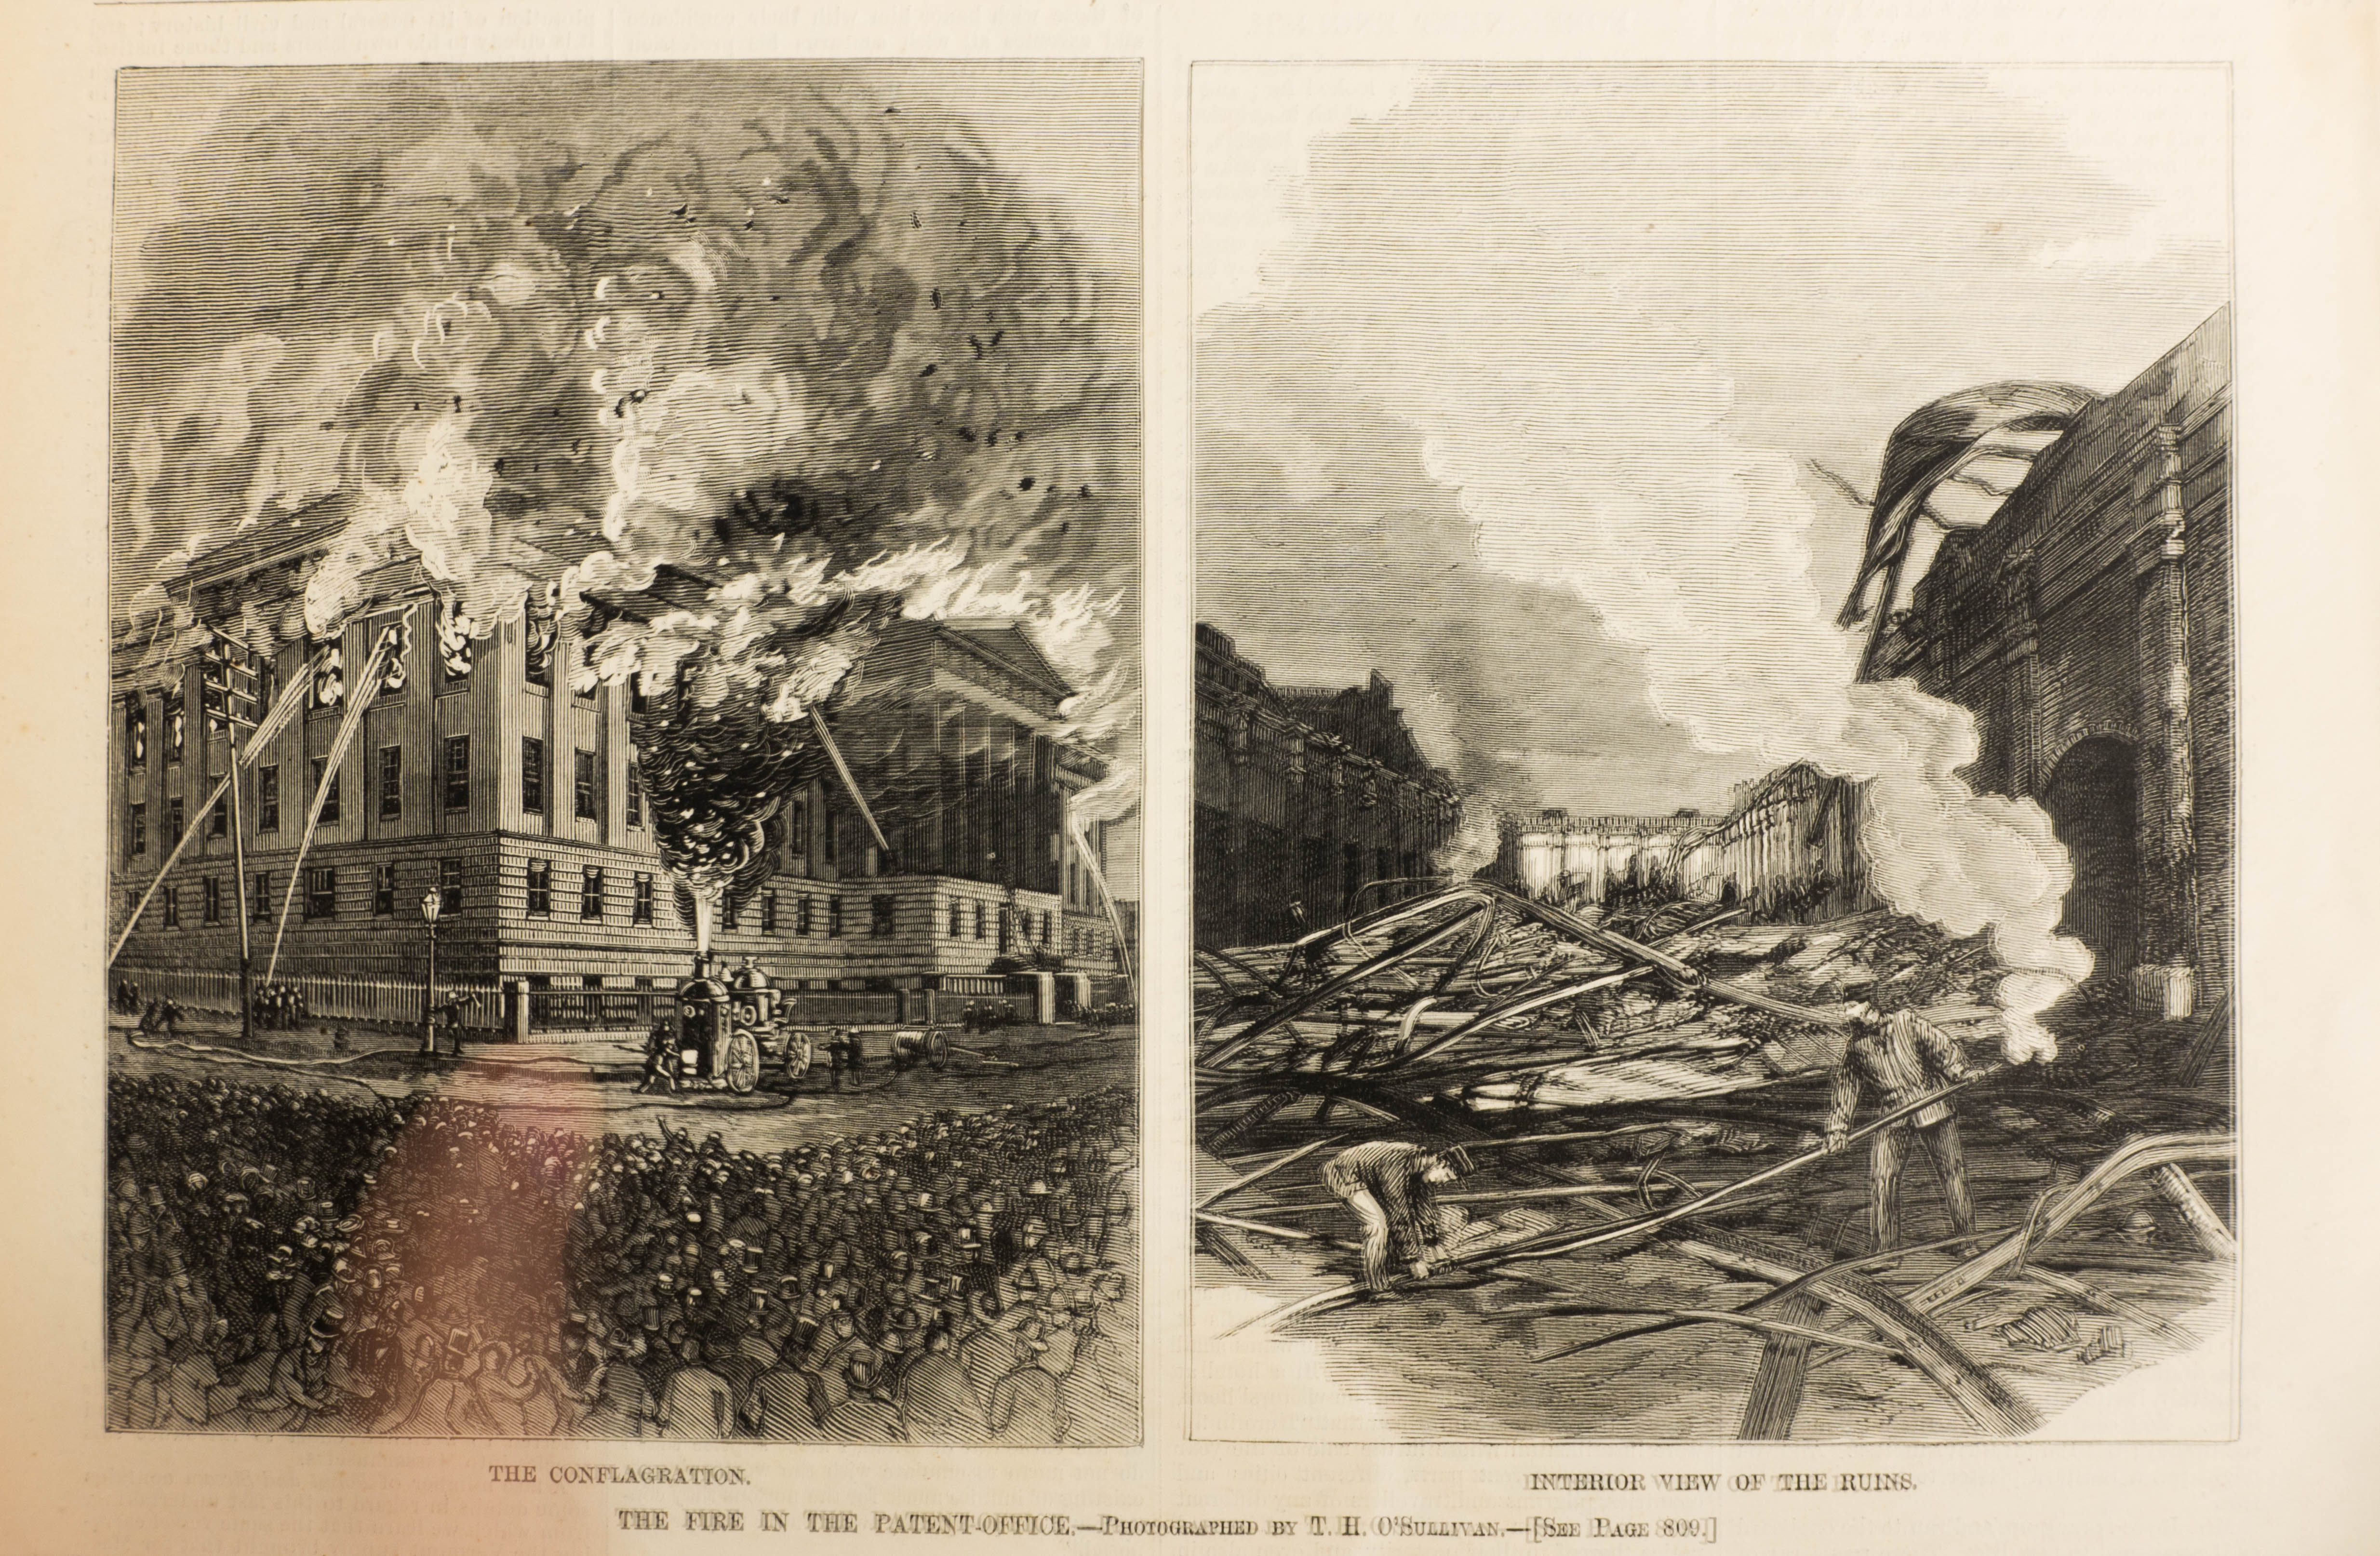 Patent Office Building Fire